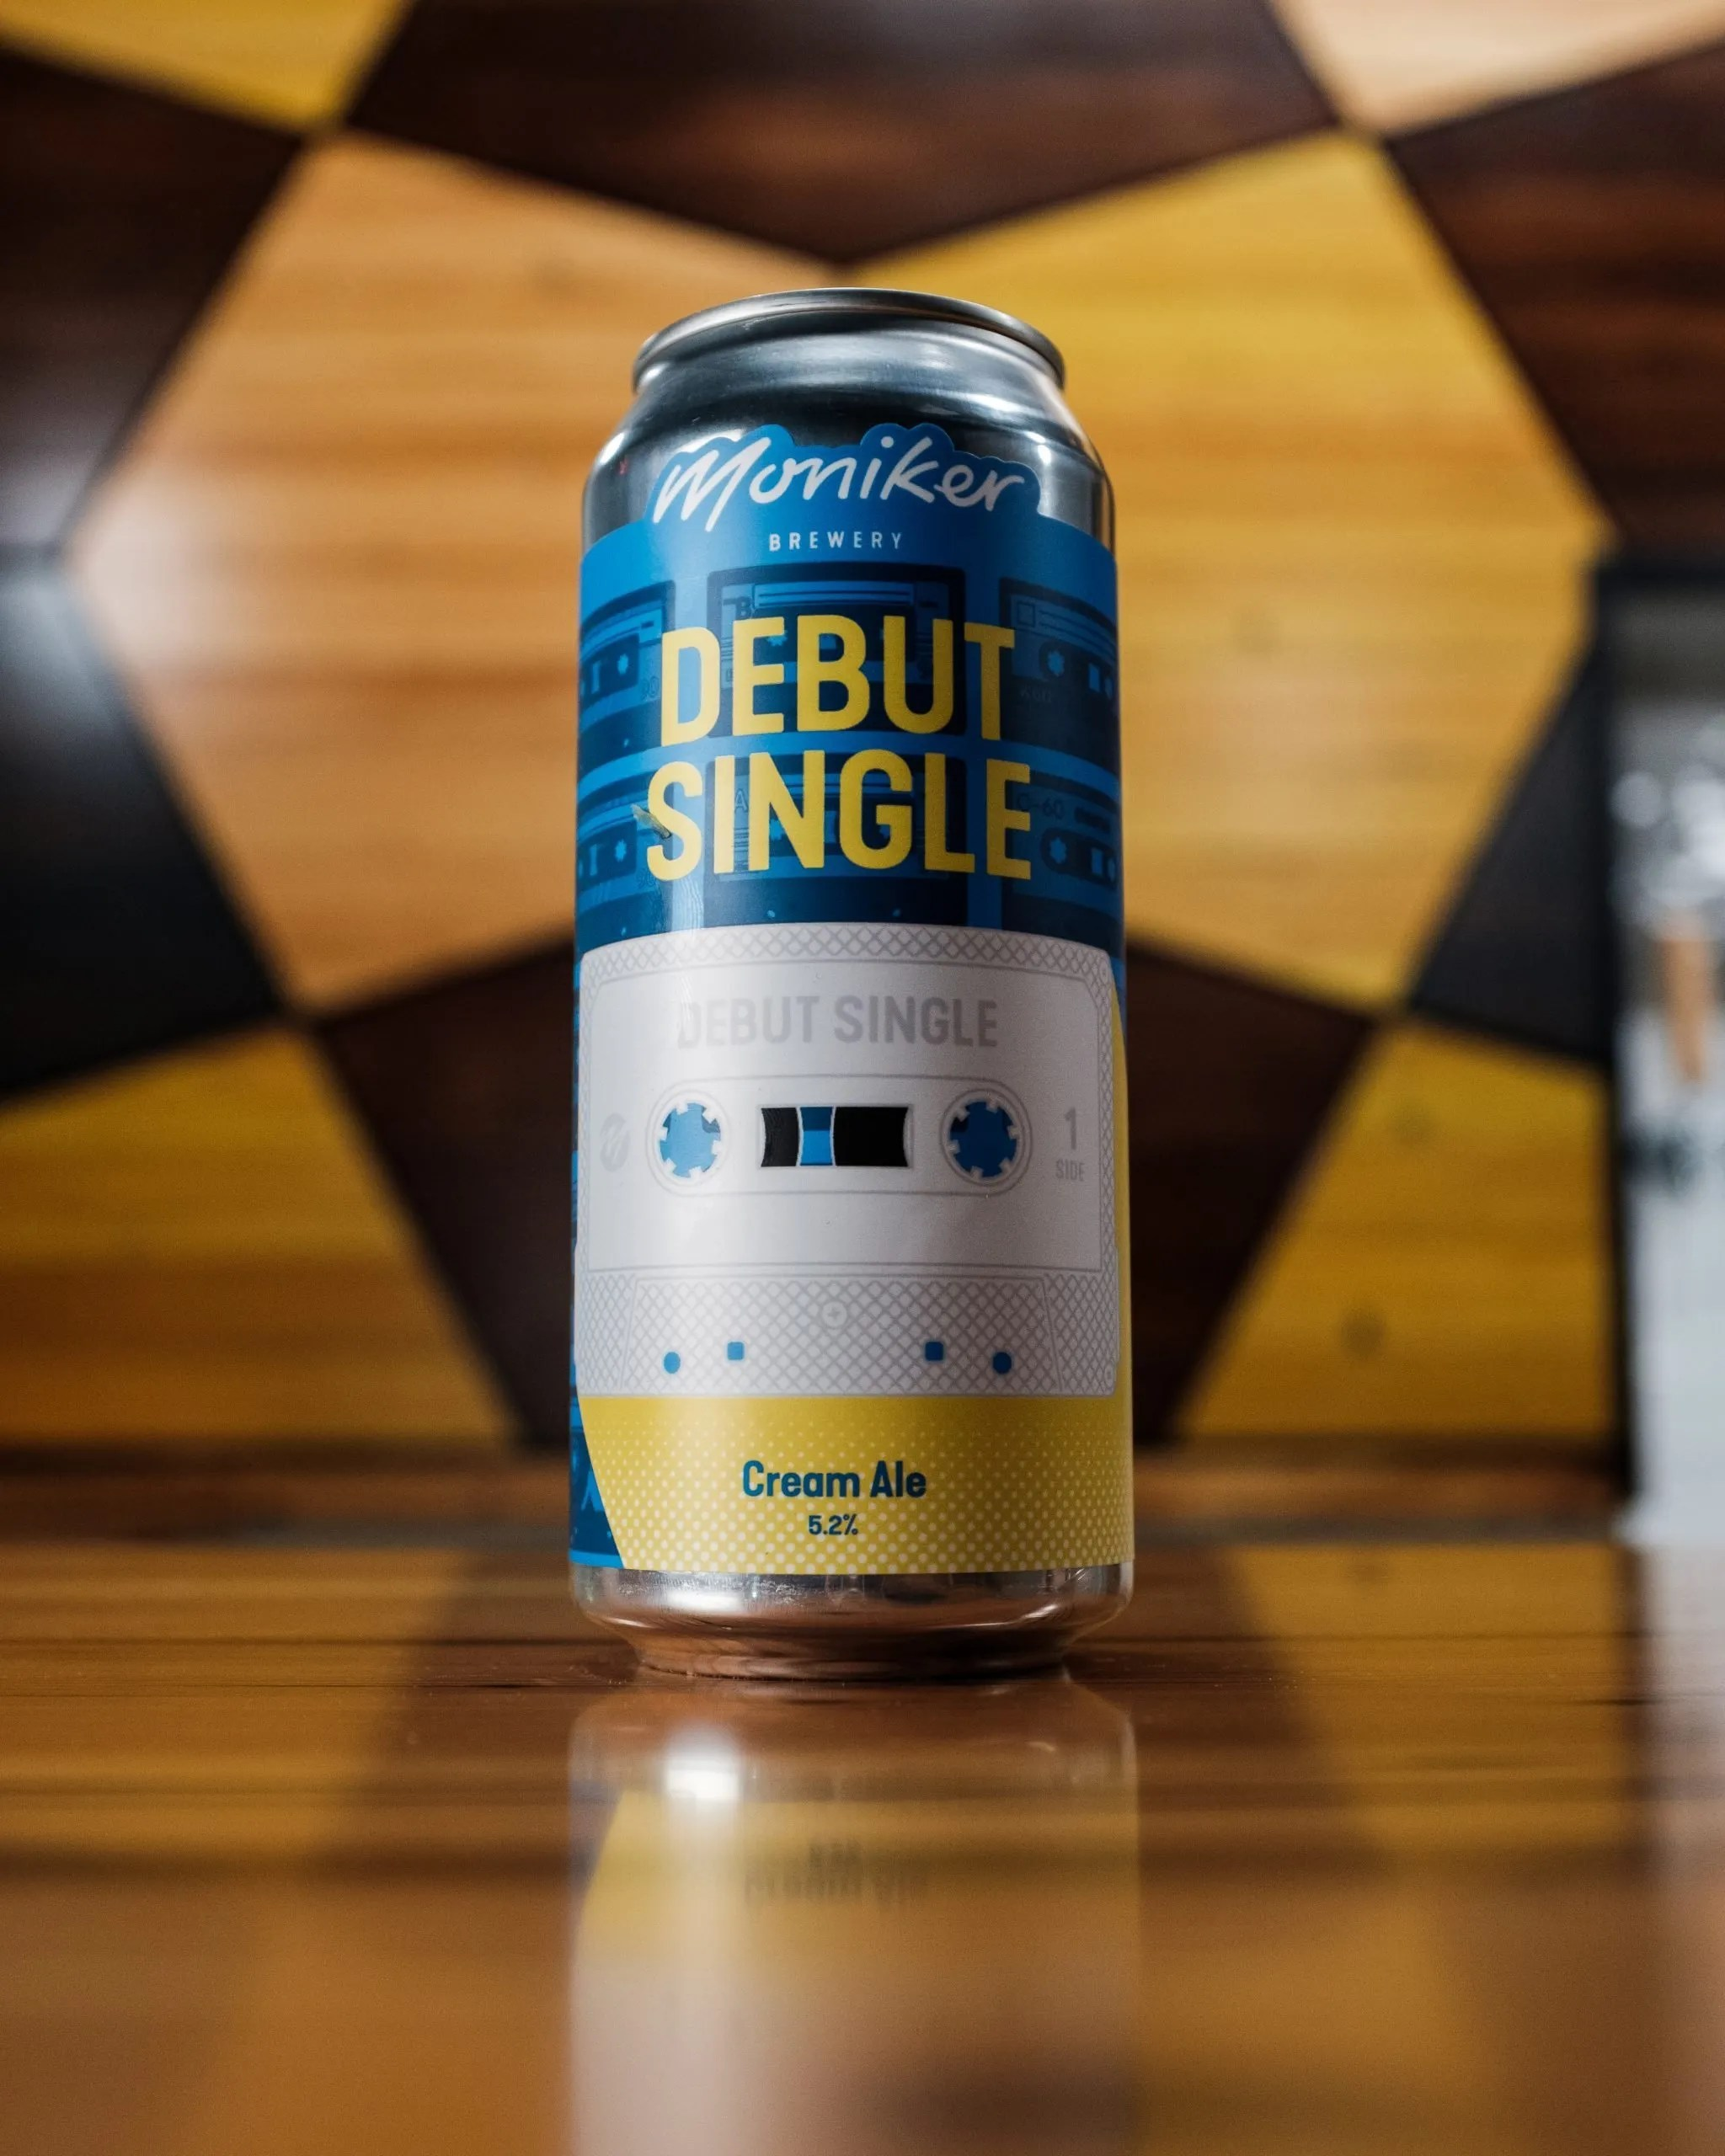 Debut Single from Moniker Brewery